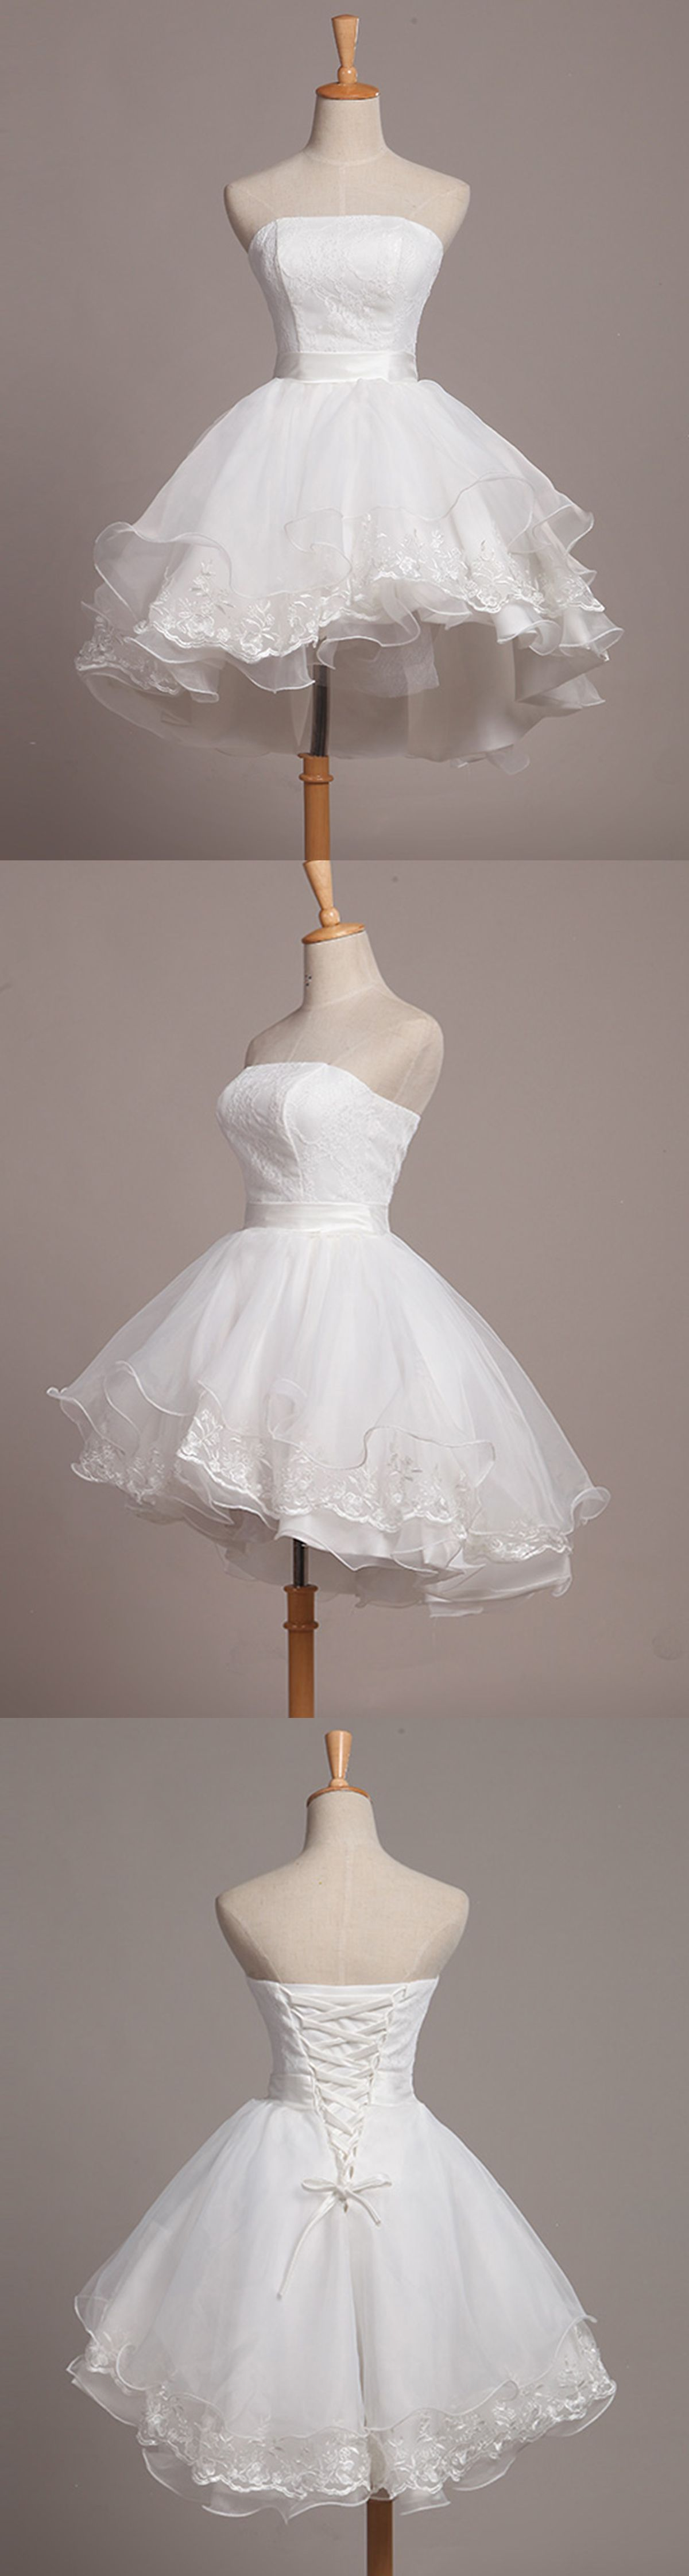 White tulle strapless mini bridesmaid dress short aline prom dress